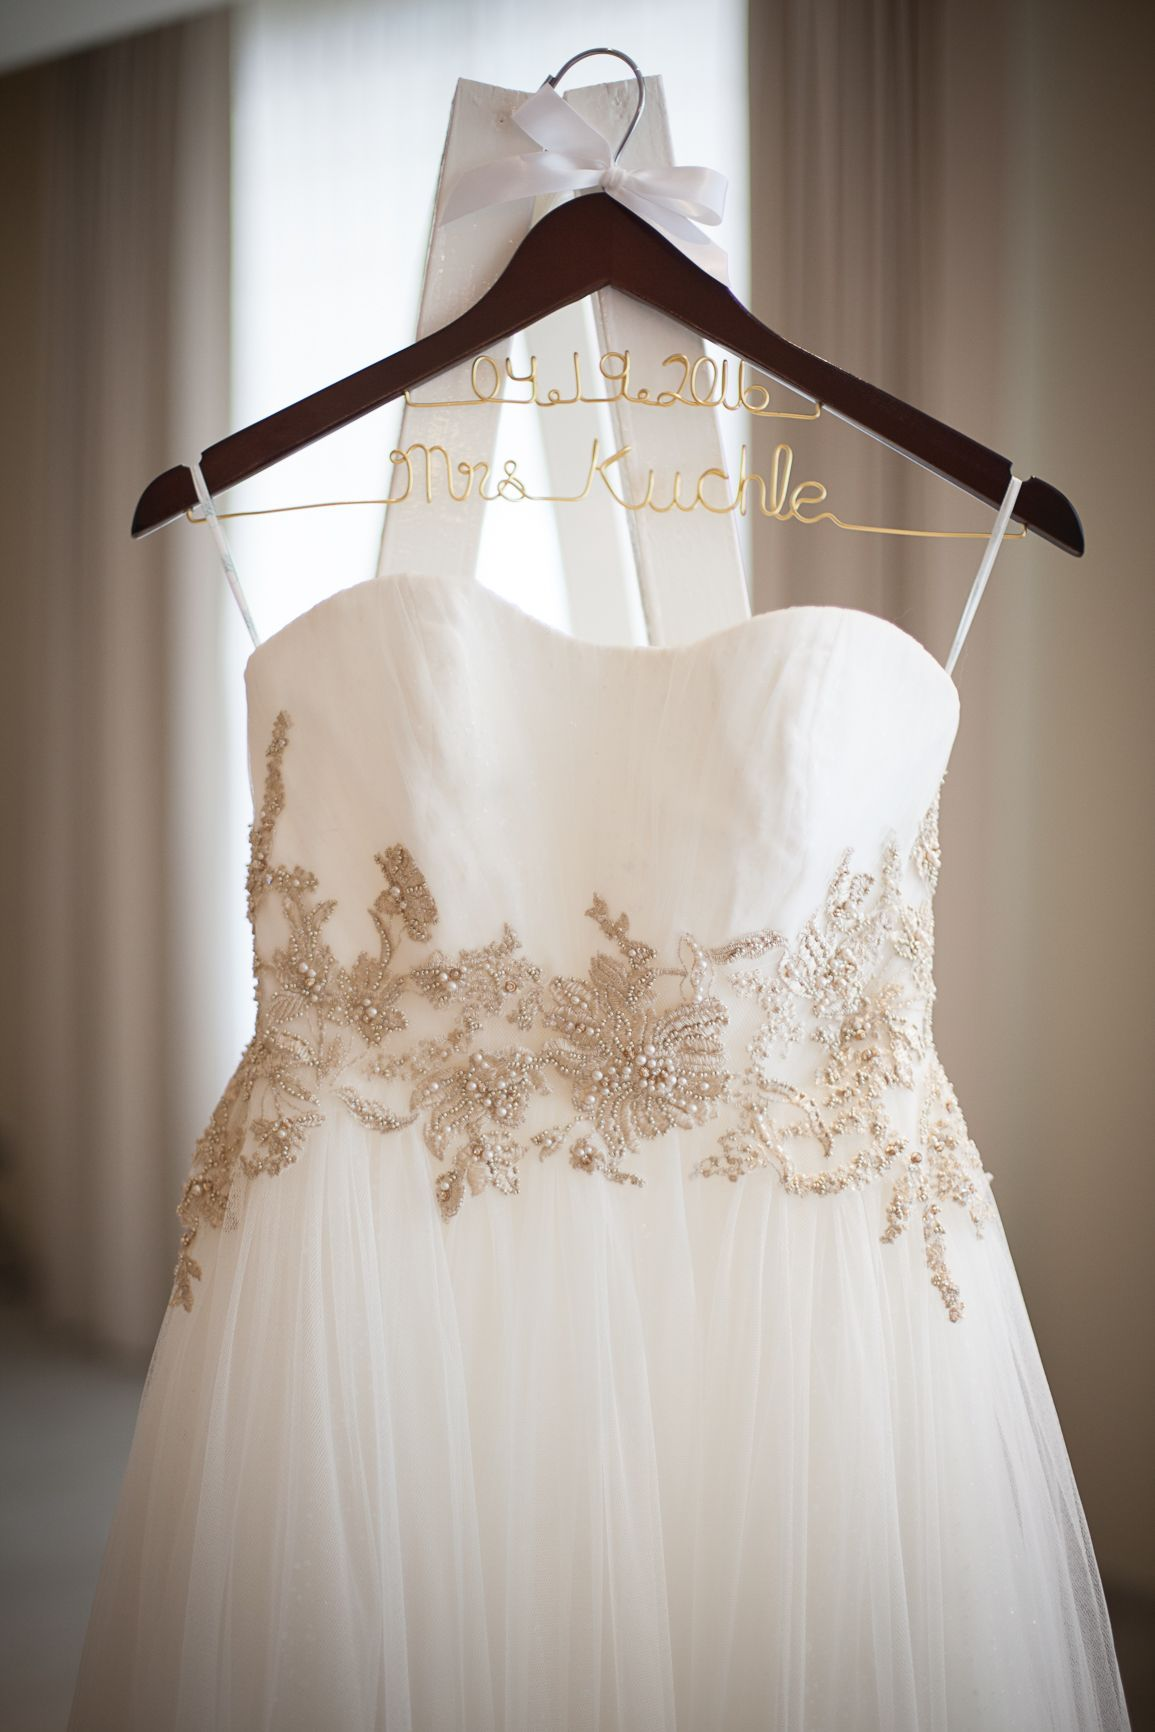 Ahhhh! These wedding gown hangers are so pretty! I would love this as an engagement gift.